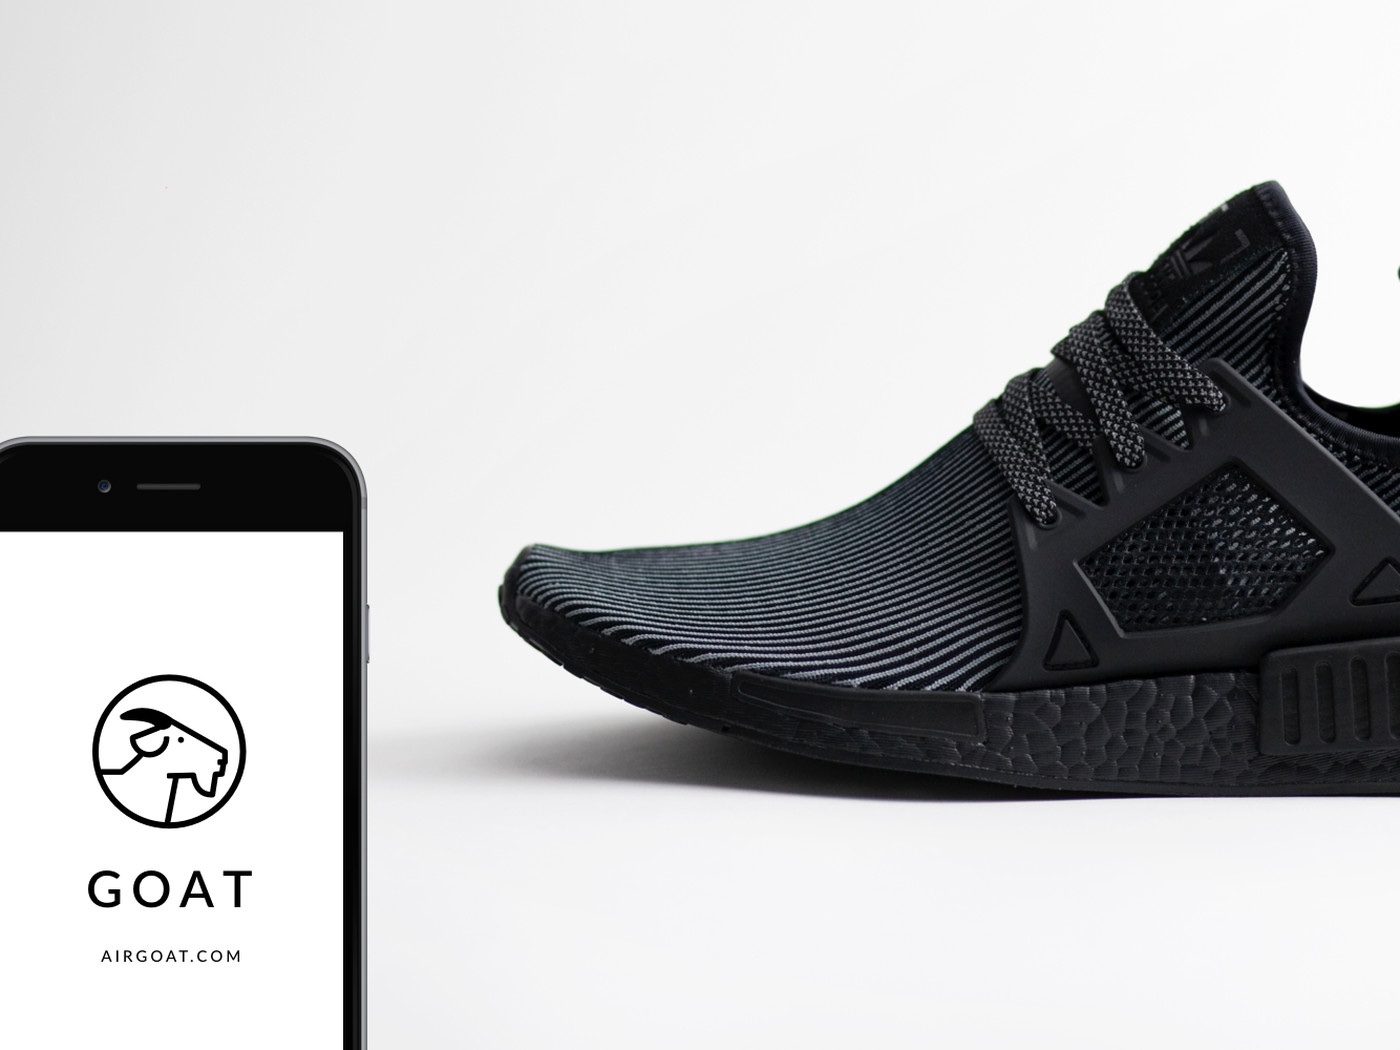 GOAT app sneakers resell